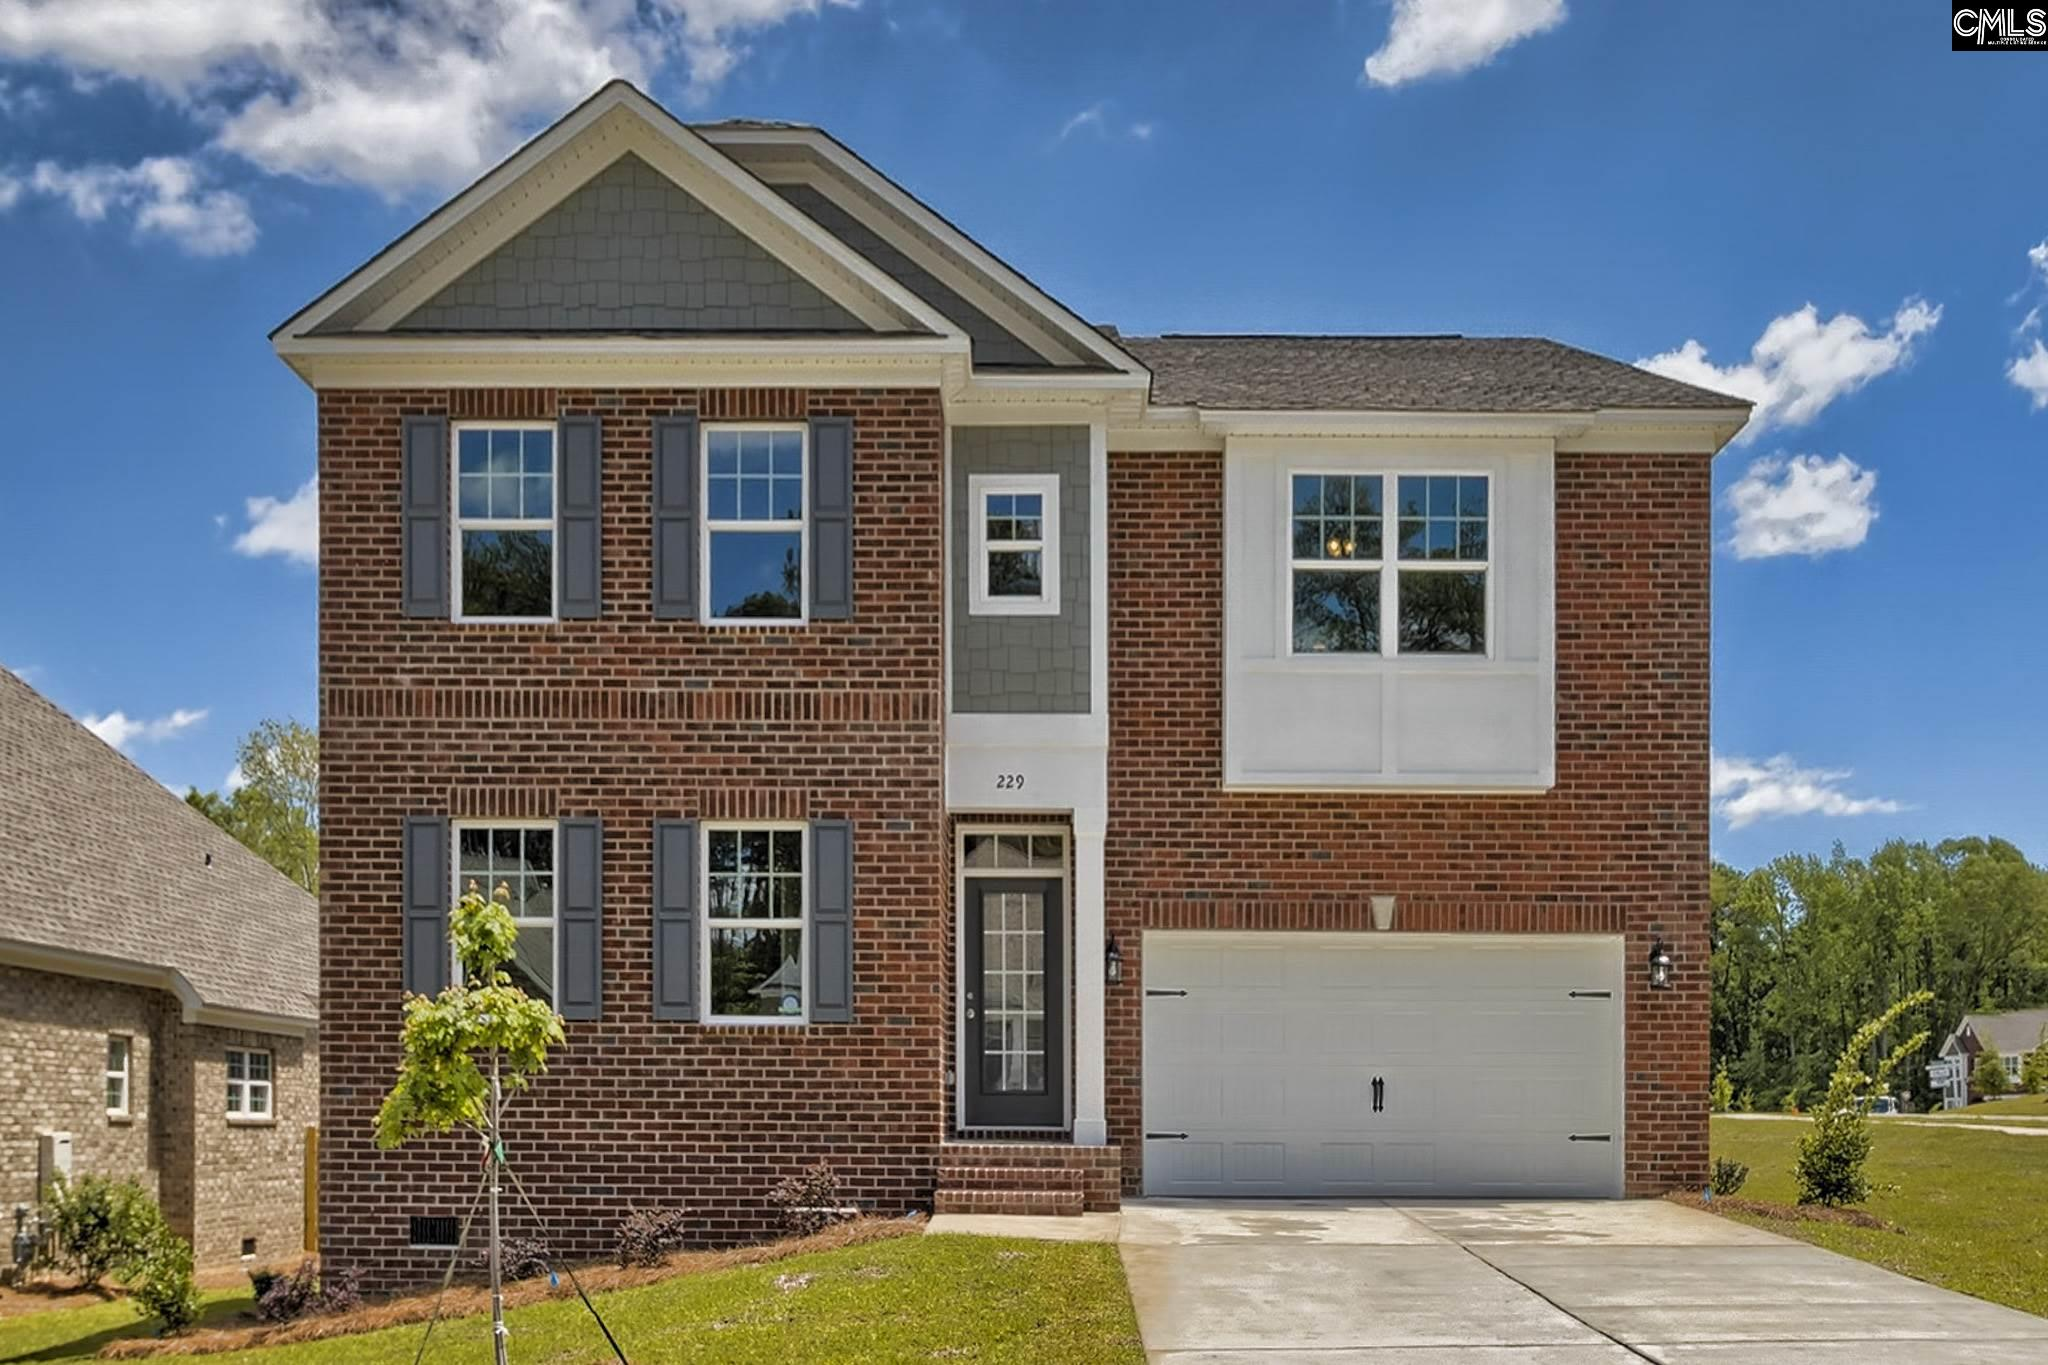 229 Cedar Hollow Irmo, SC 29063